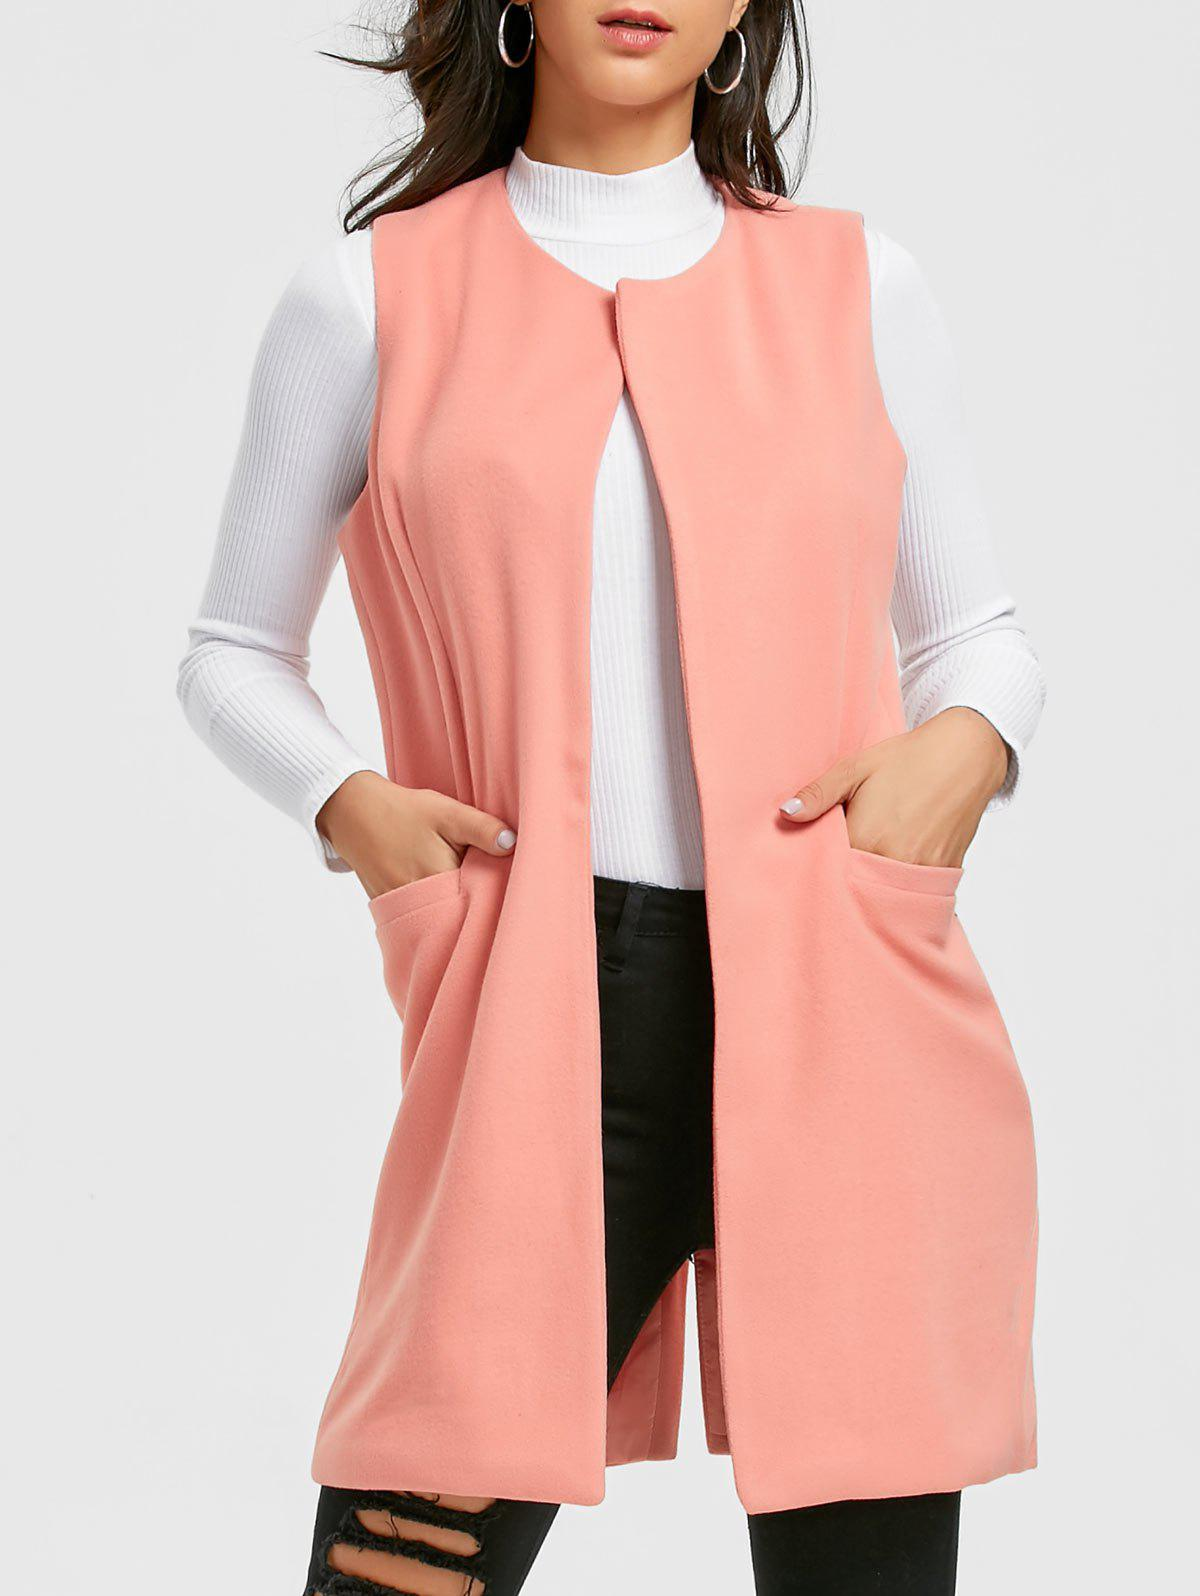 Side Pockets Back Slit Vest - PINK S